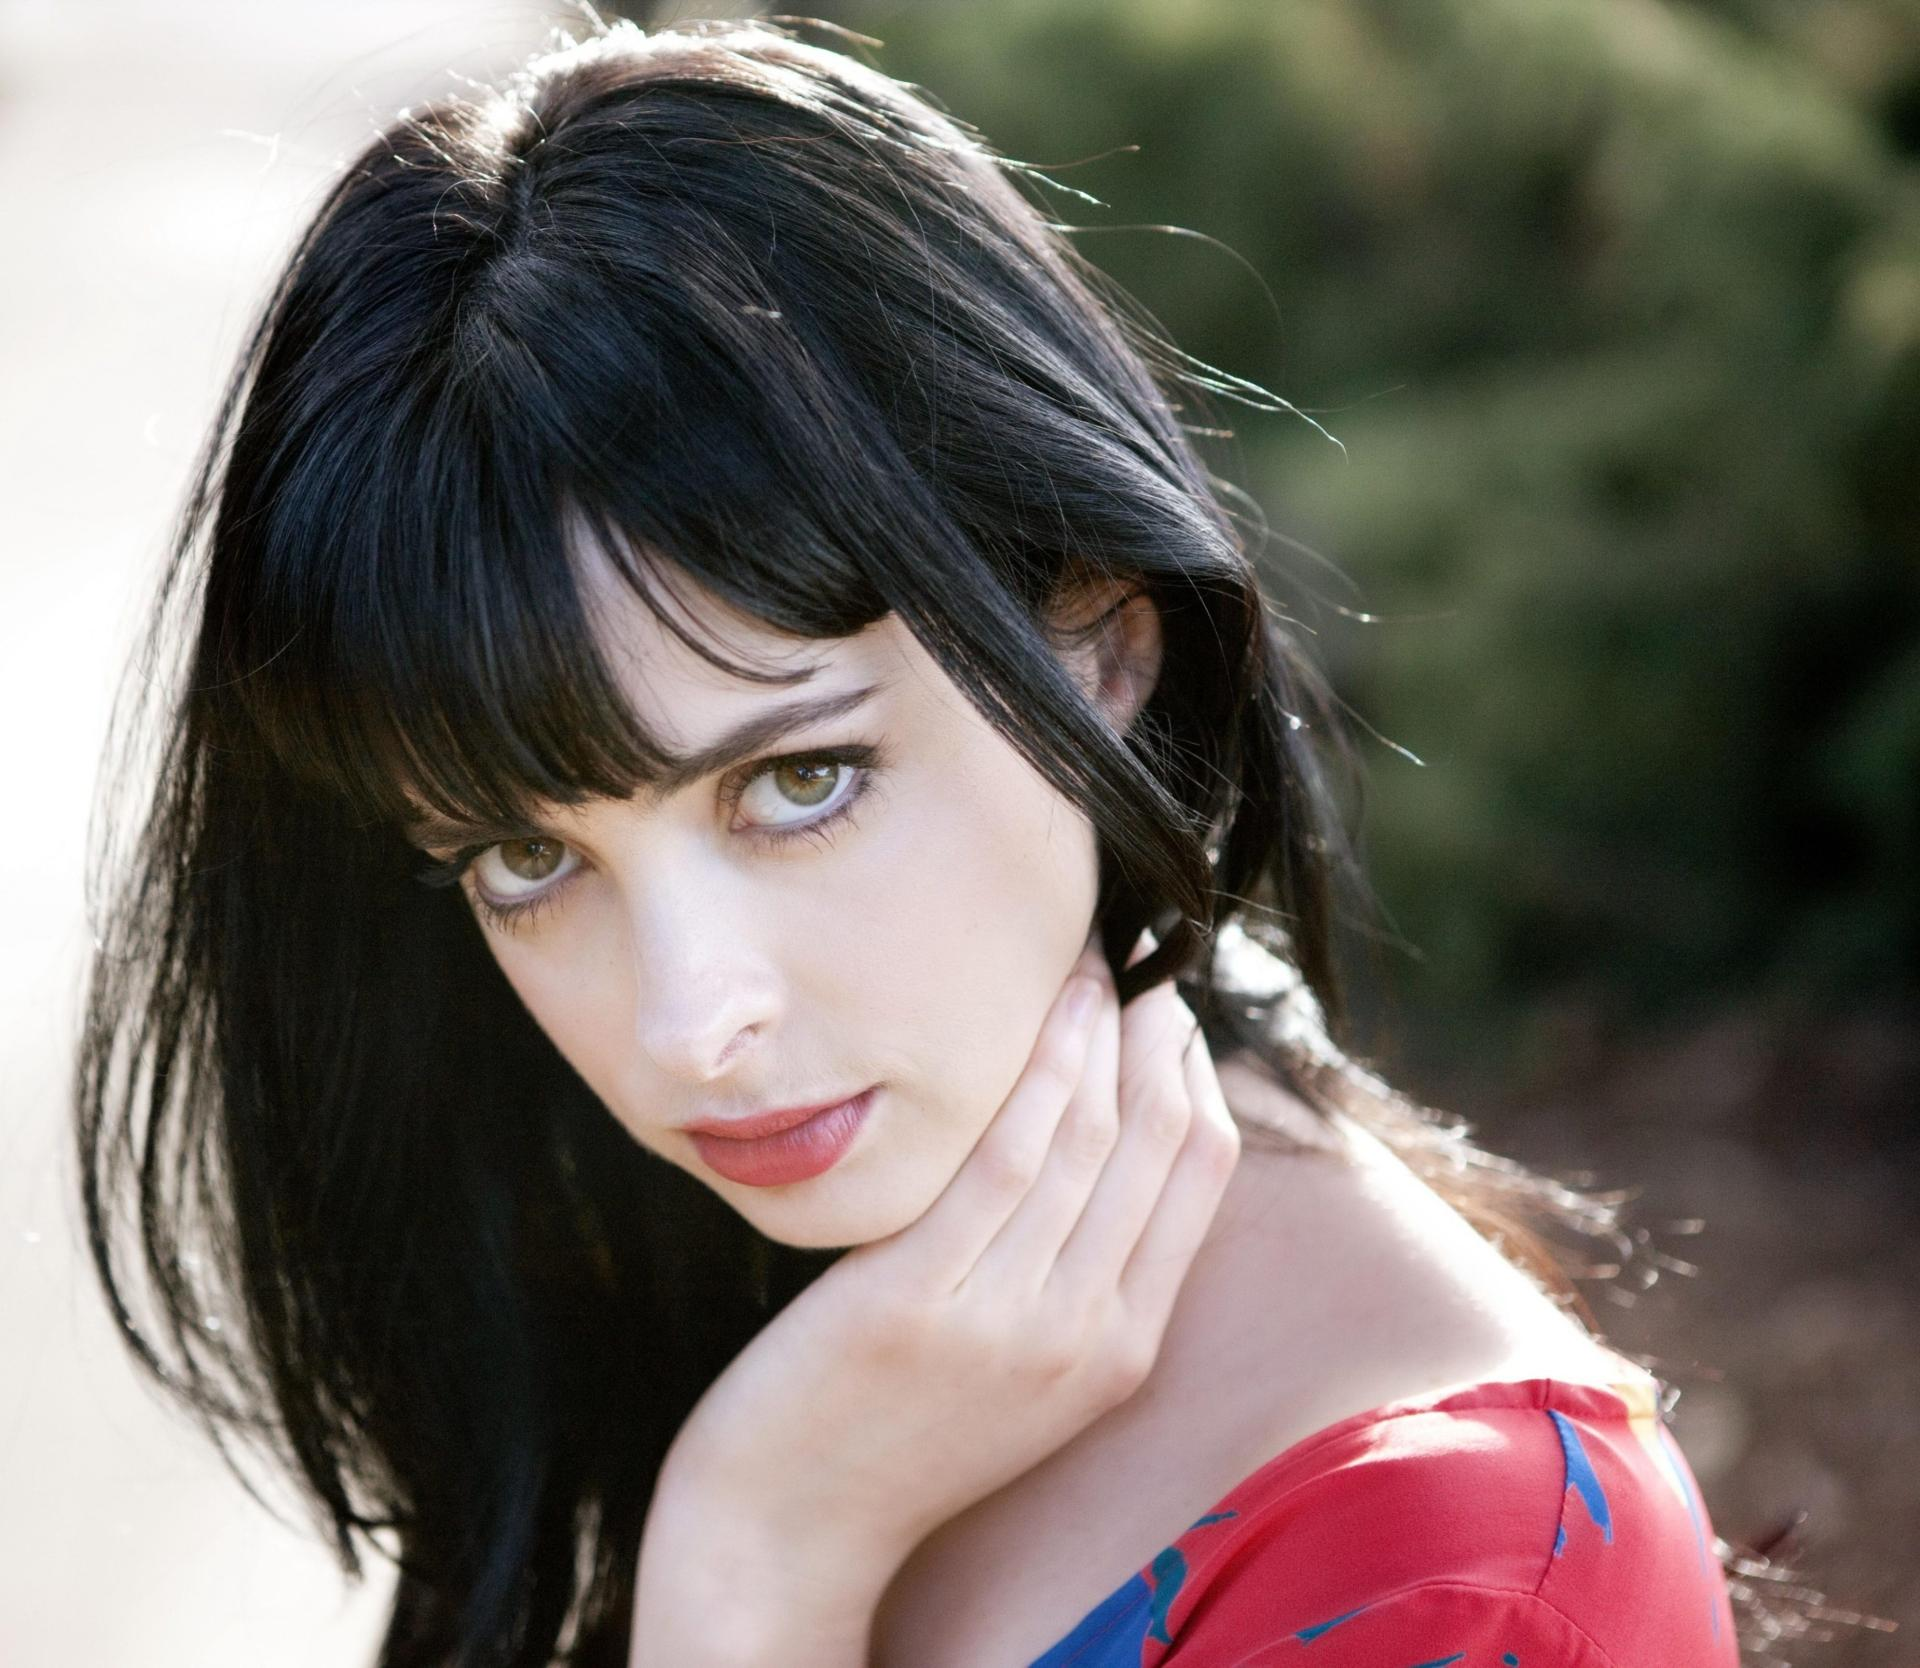 Krysten Ritter at 2048 x 2048 iPad size wallpapers HD quality